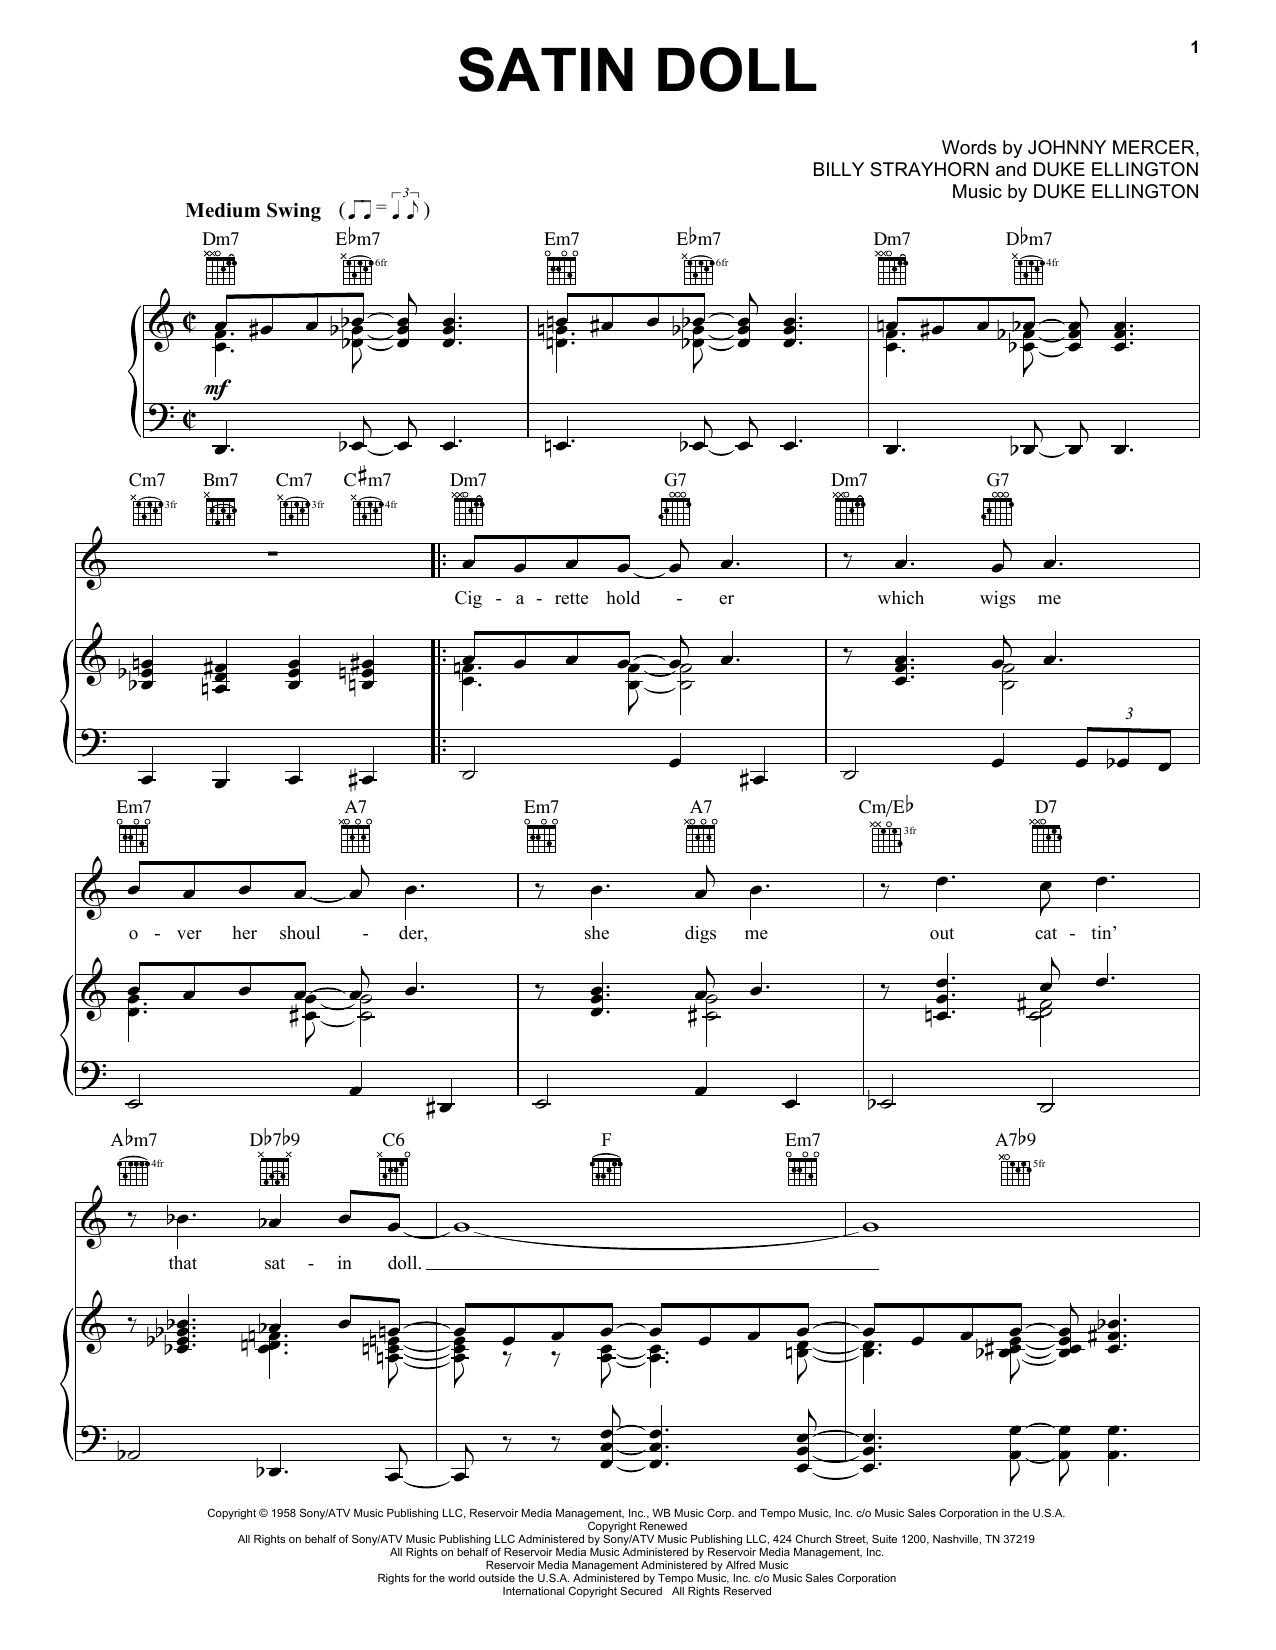 Duke Ellington Satin Doll sheet music notes and chords. Download Printable PDF.